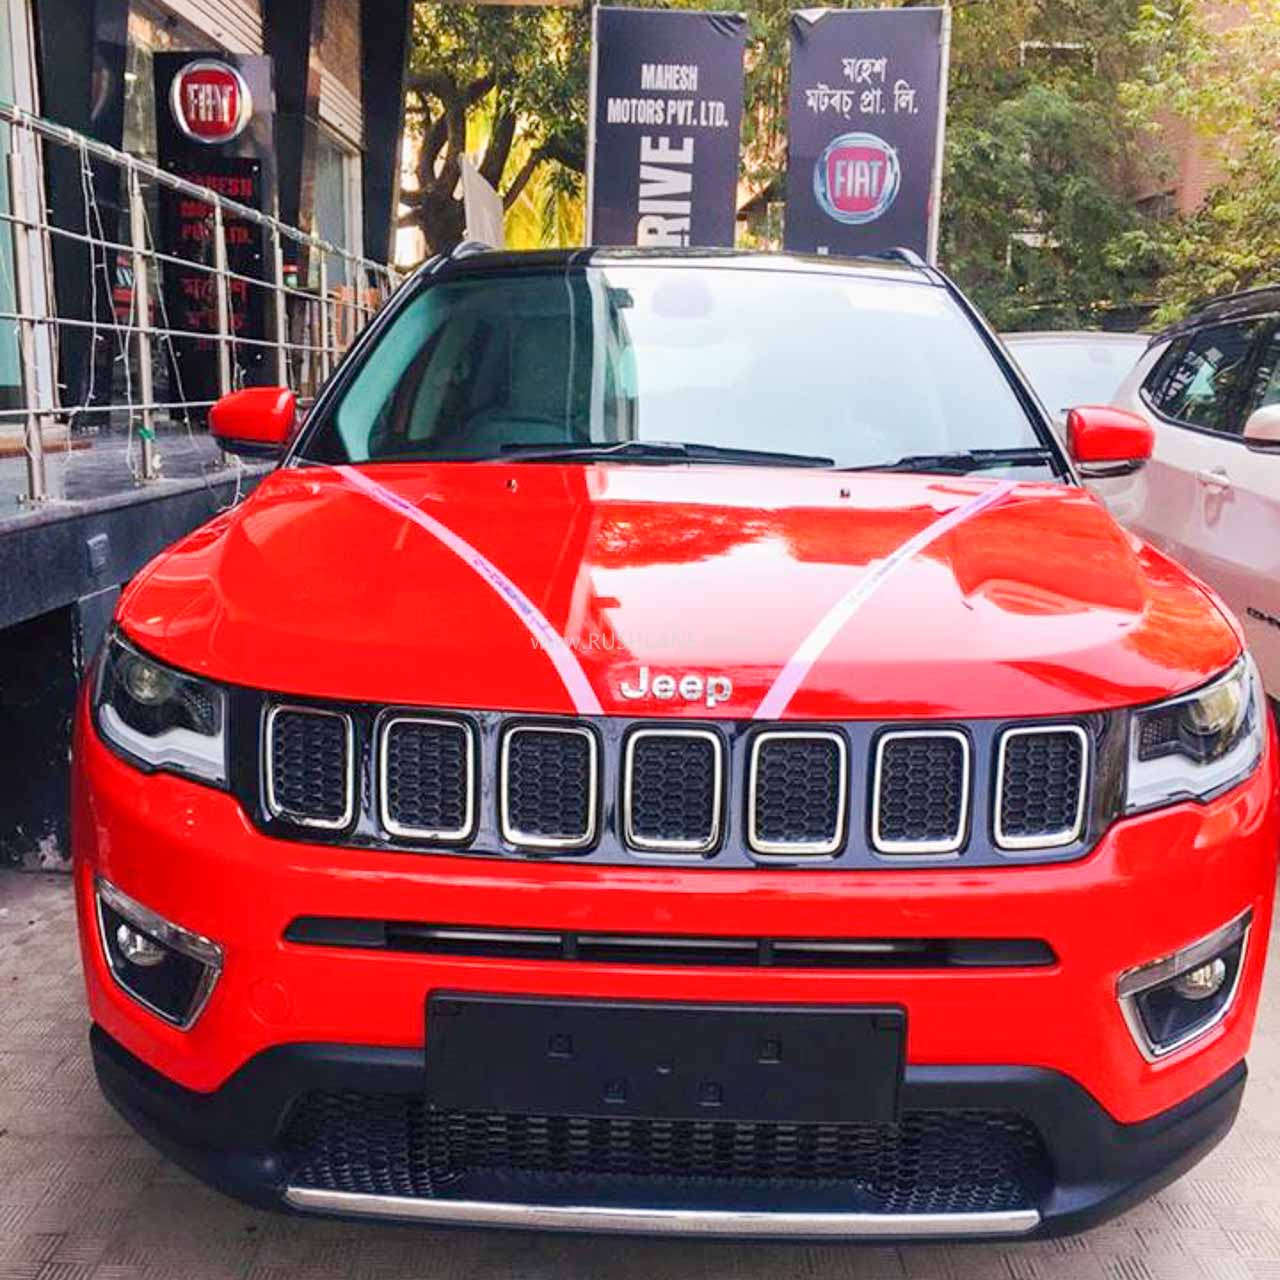 Jeep Compass Handling charges